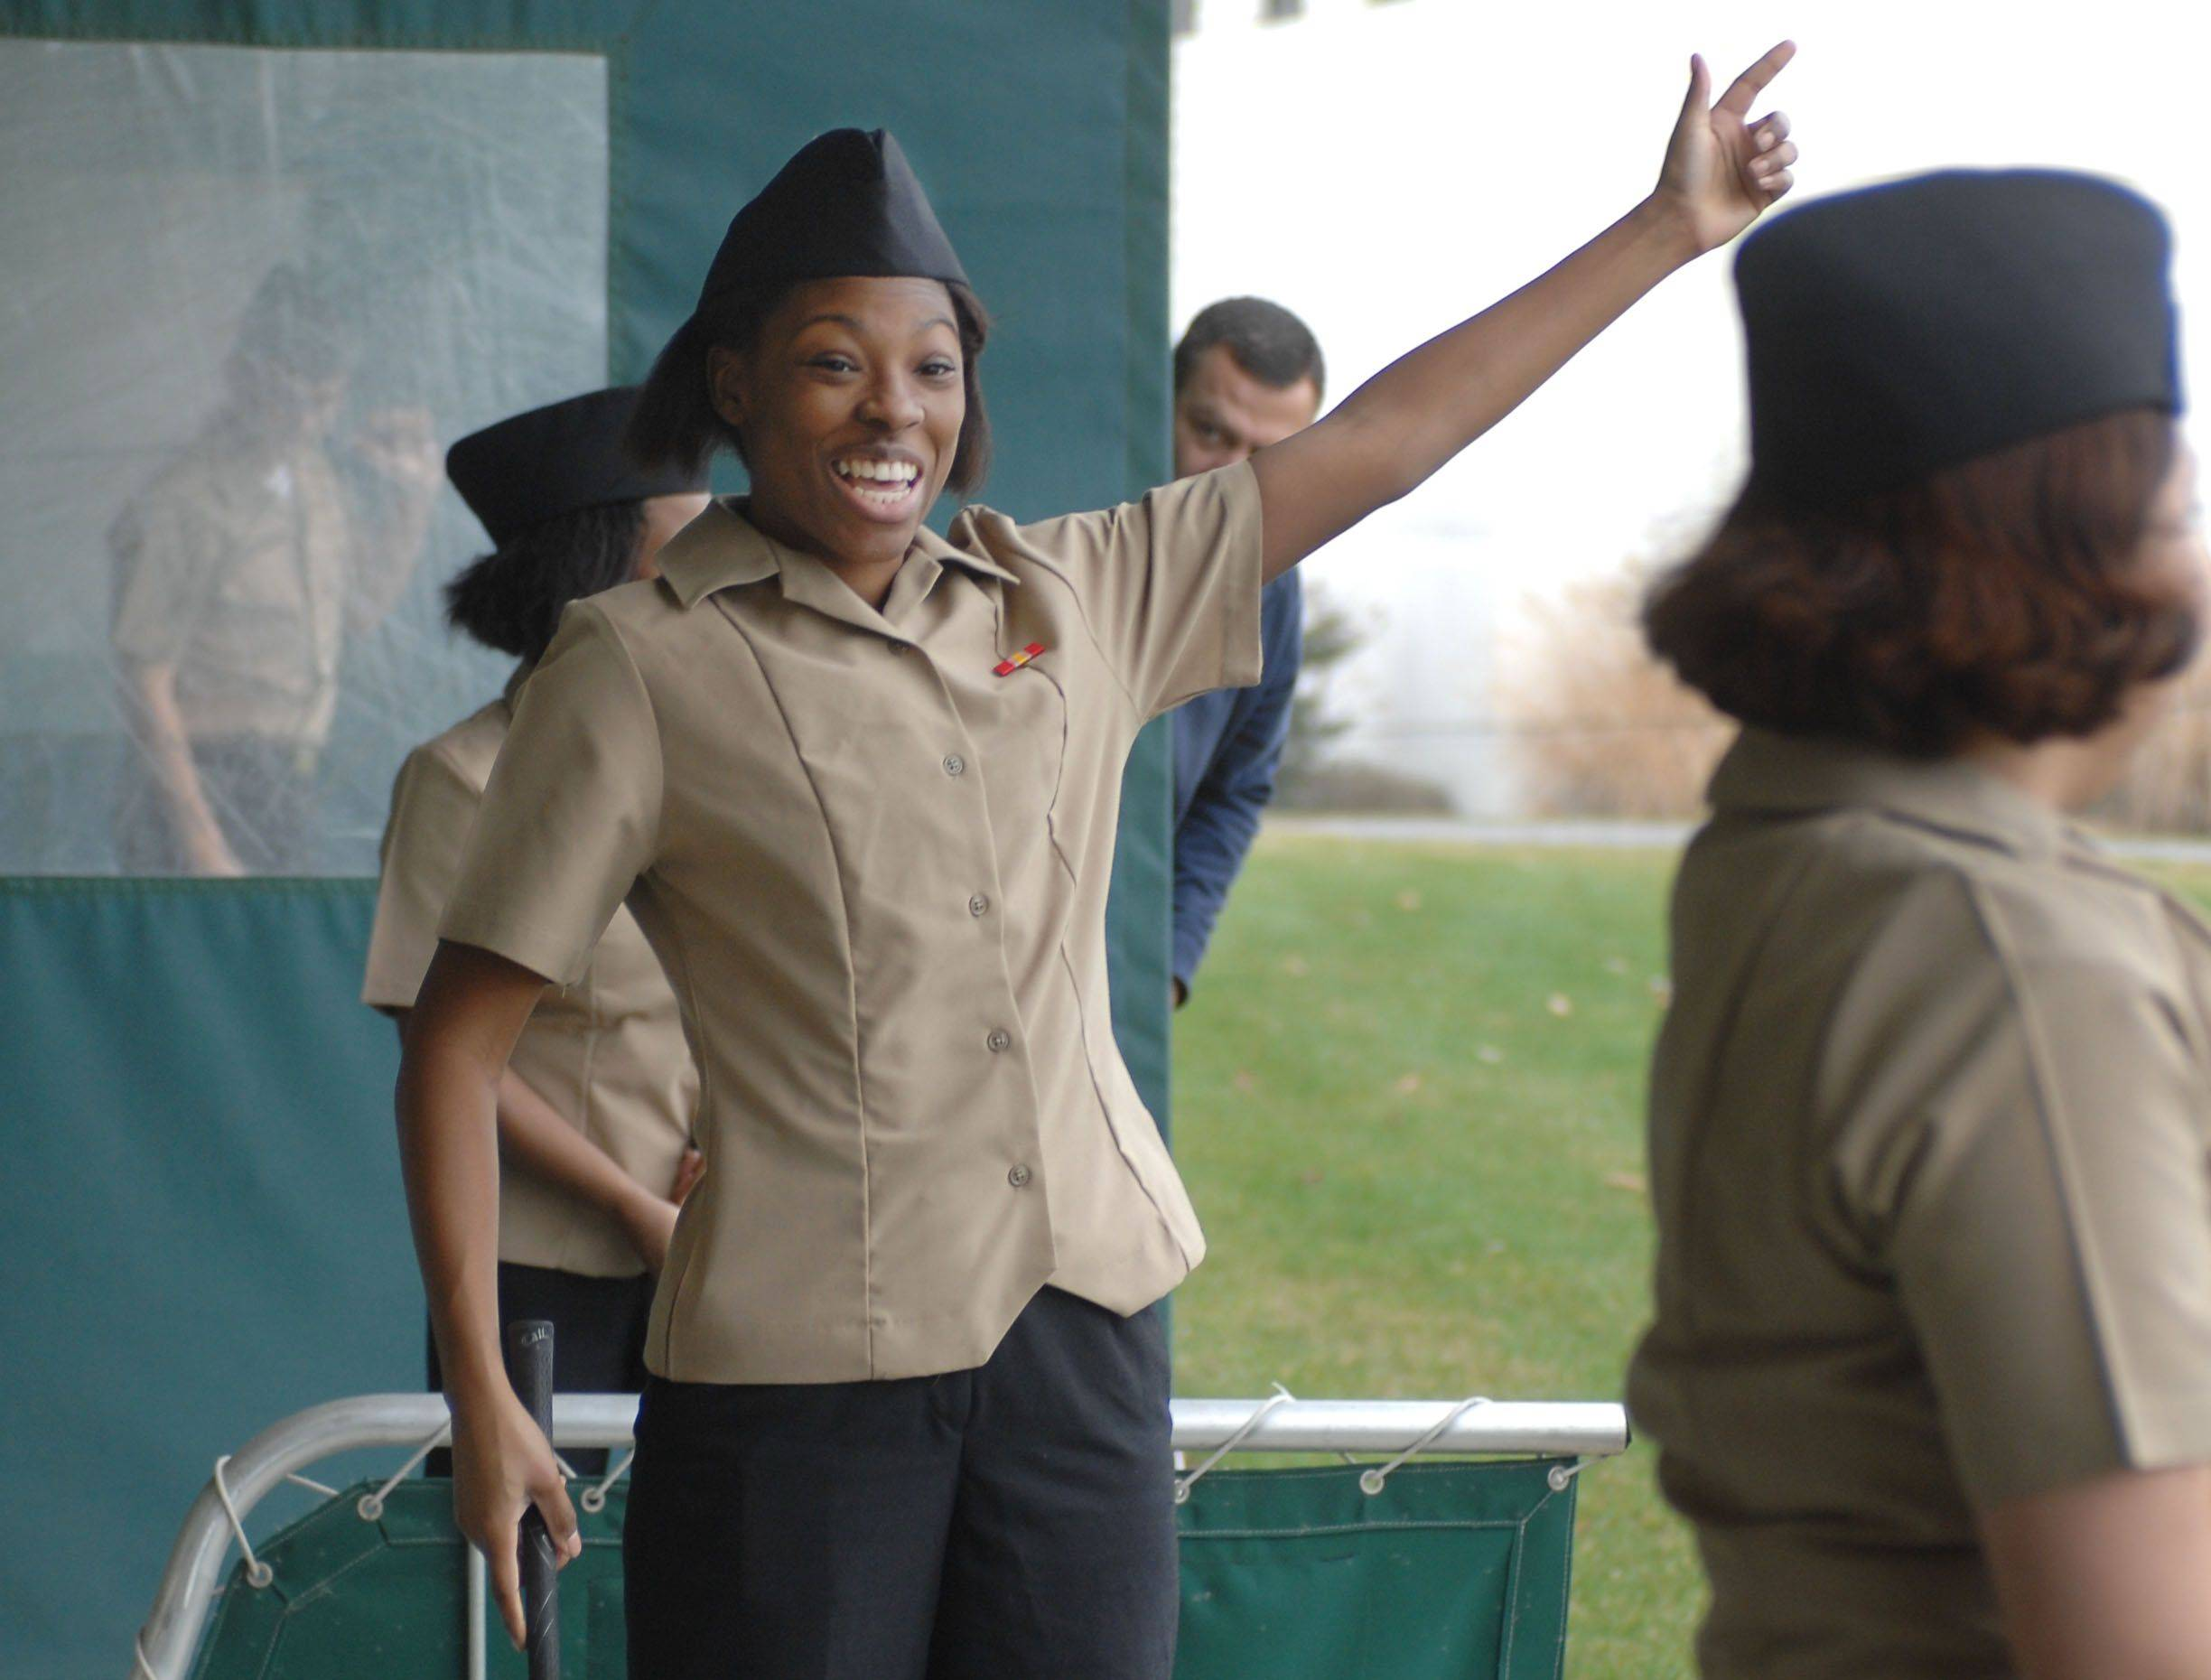 Lake Zurich's New Life Evangelical Lutheran Church participated in the Navy's Adopt-A-Sailor program on Thanksgiving day, bringing twelve recruits to the driving range at the Libertyville Sports Complex. Shawnesha Madison of Las Vegas is thrilled with one of her tee shots Thursday.